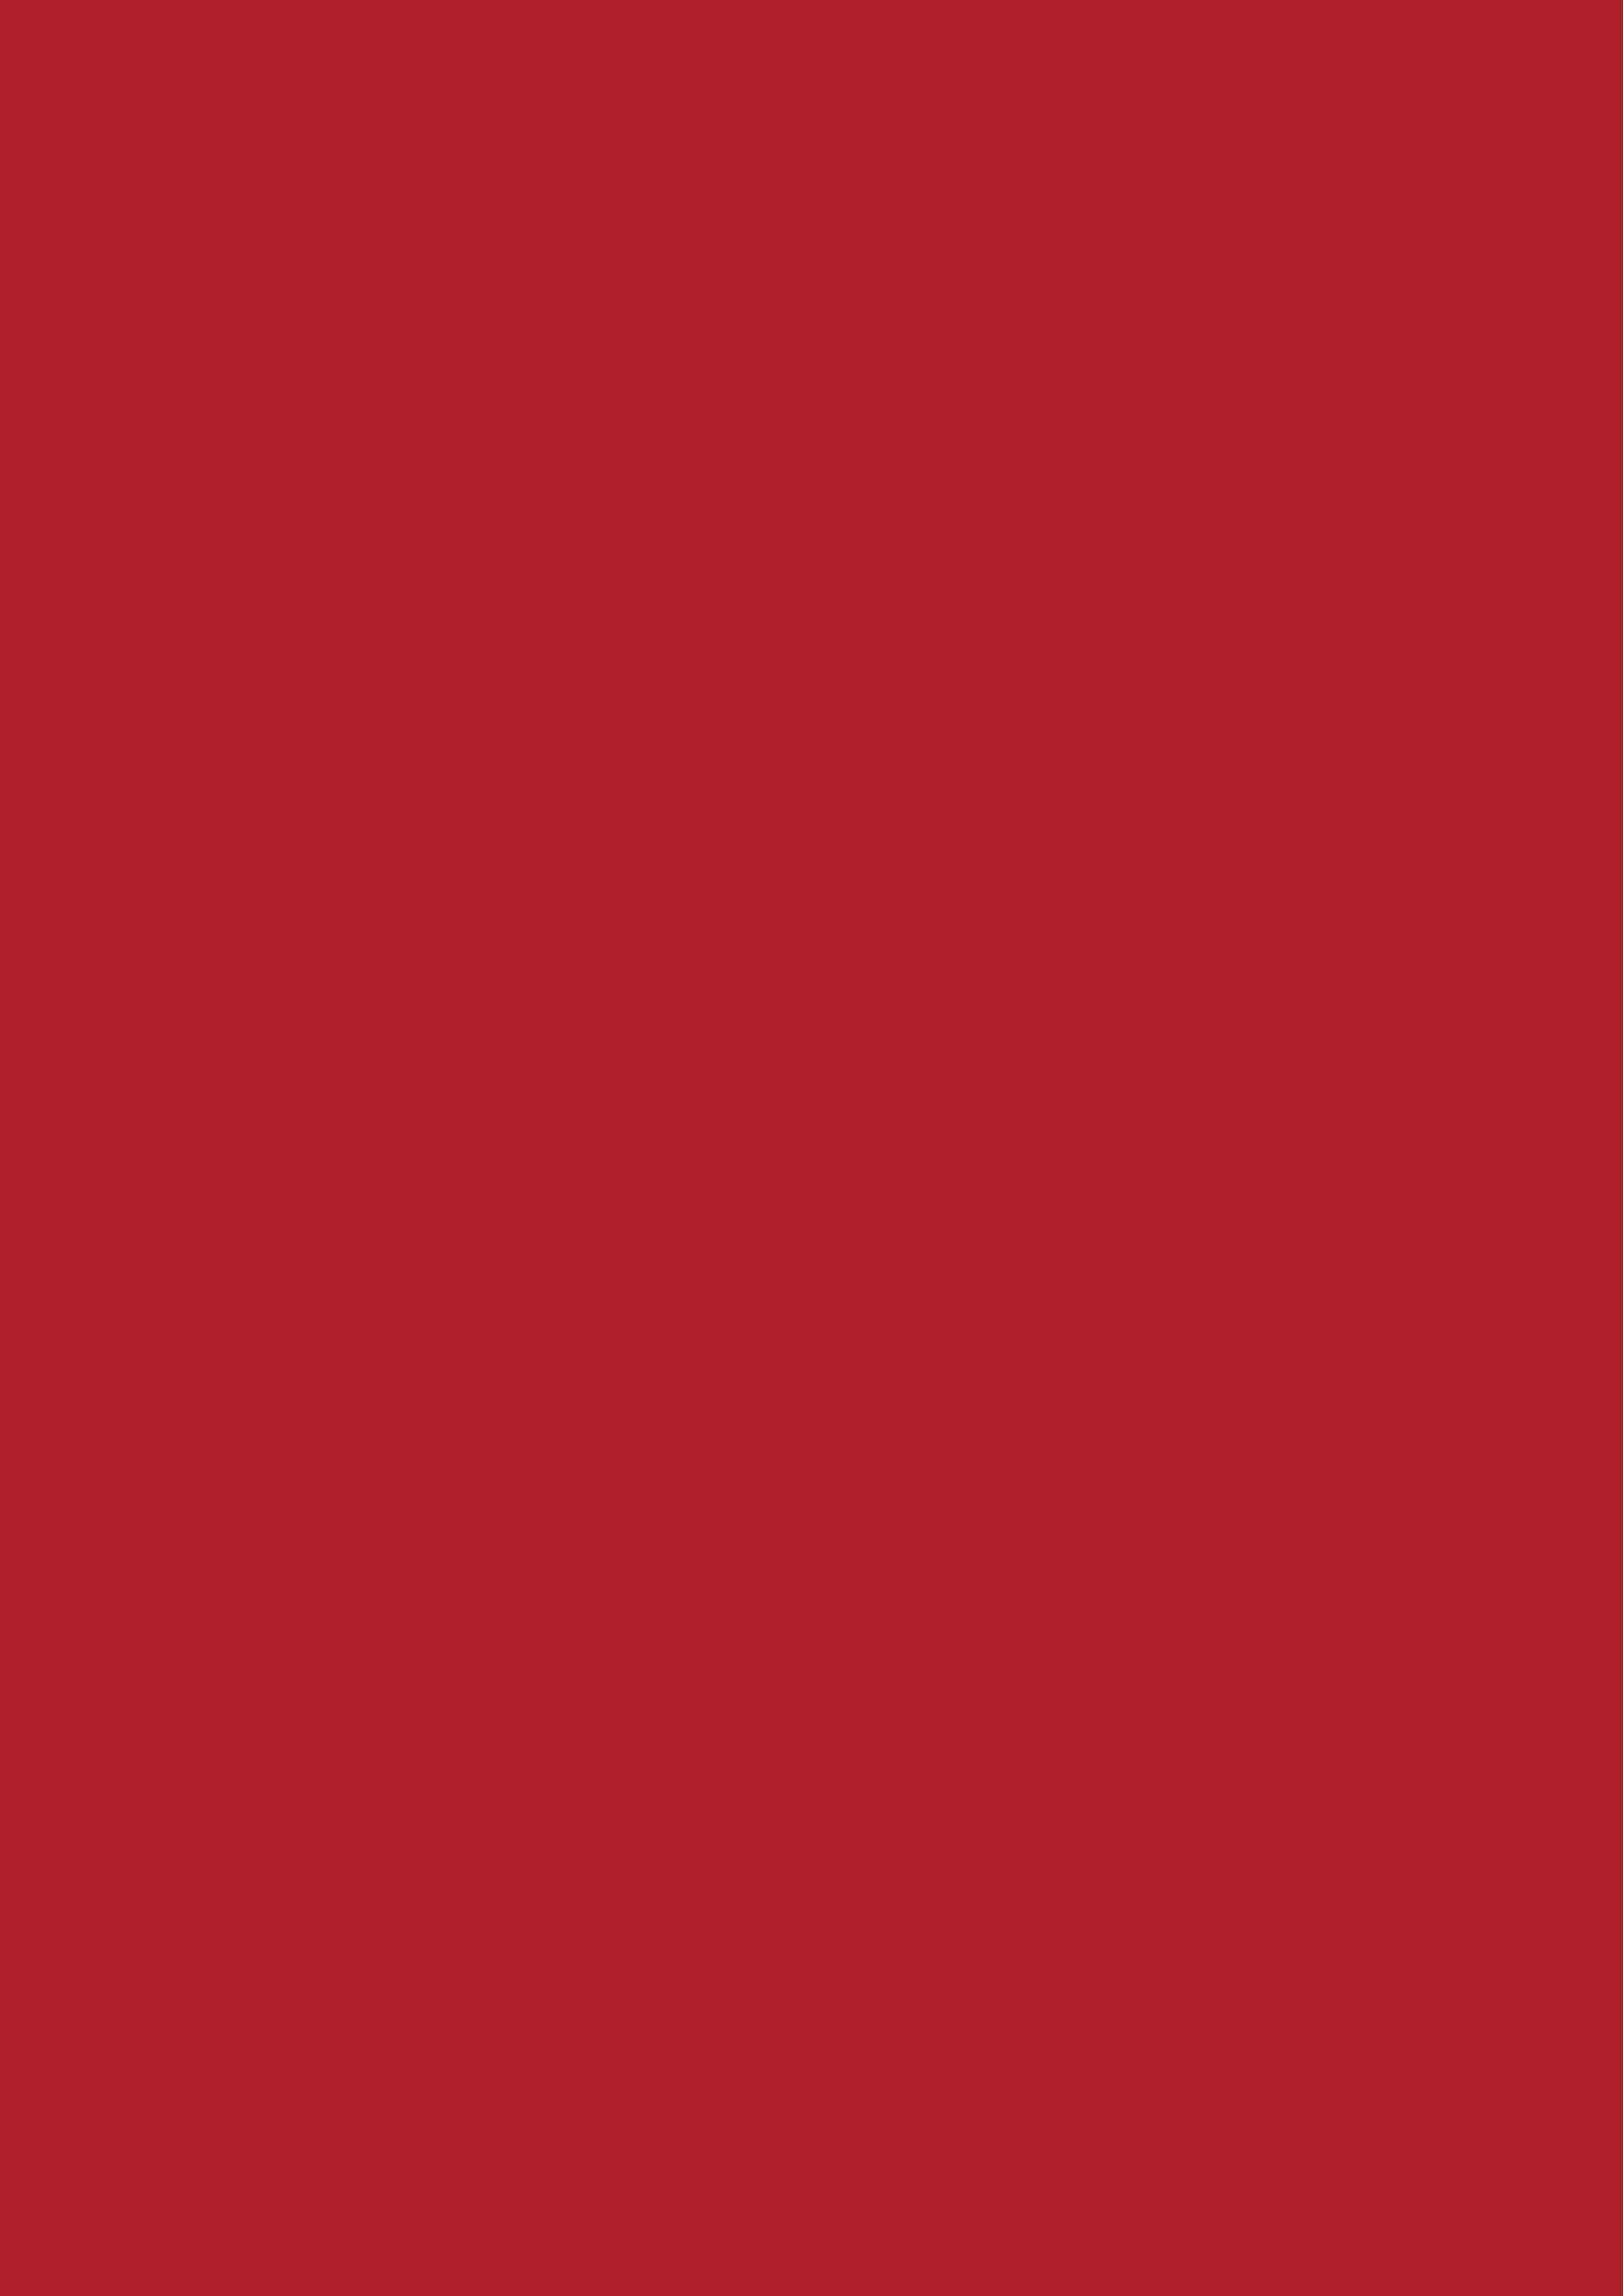 2480x3508 Upsdell Red Solid Color Background